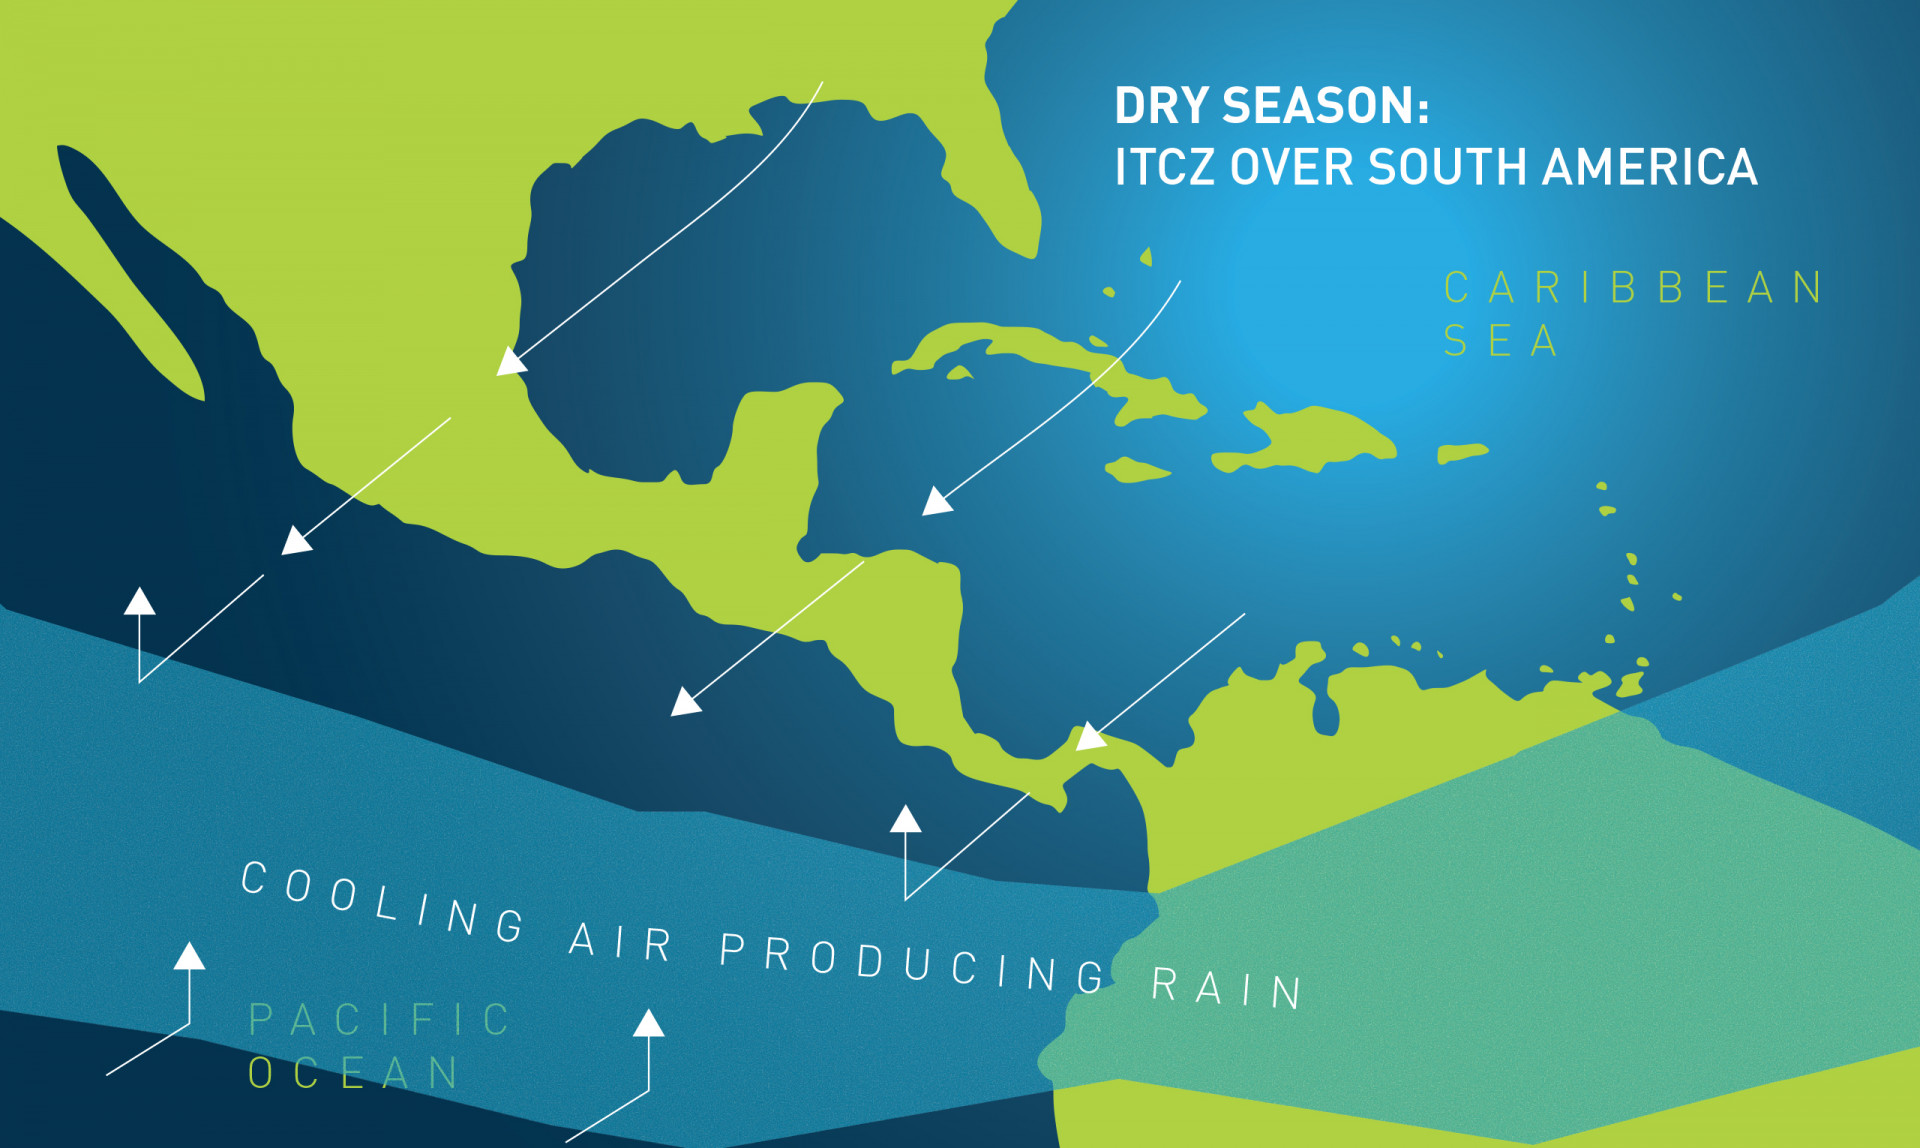 By mid-December, the ITCZ is pushed south by the northeast trade winds that blow over Panama and create predominantly dry conditions that usually last until April